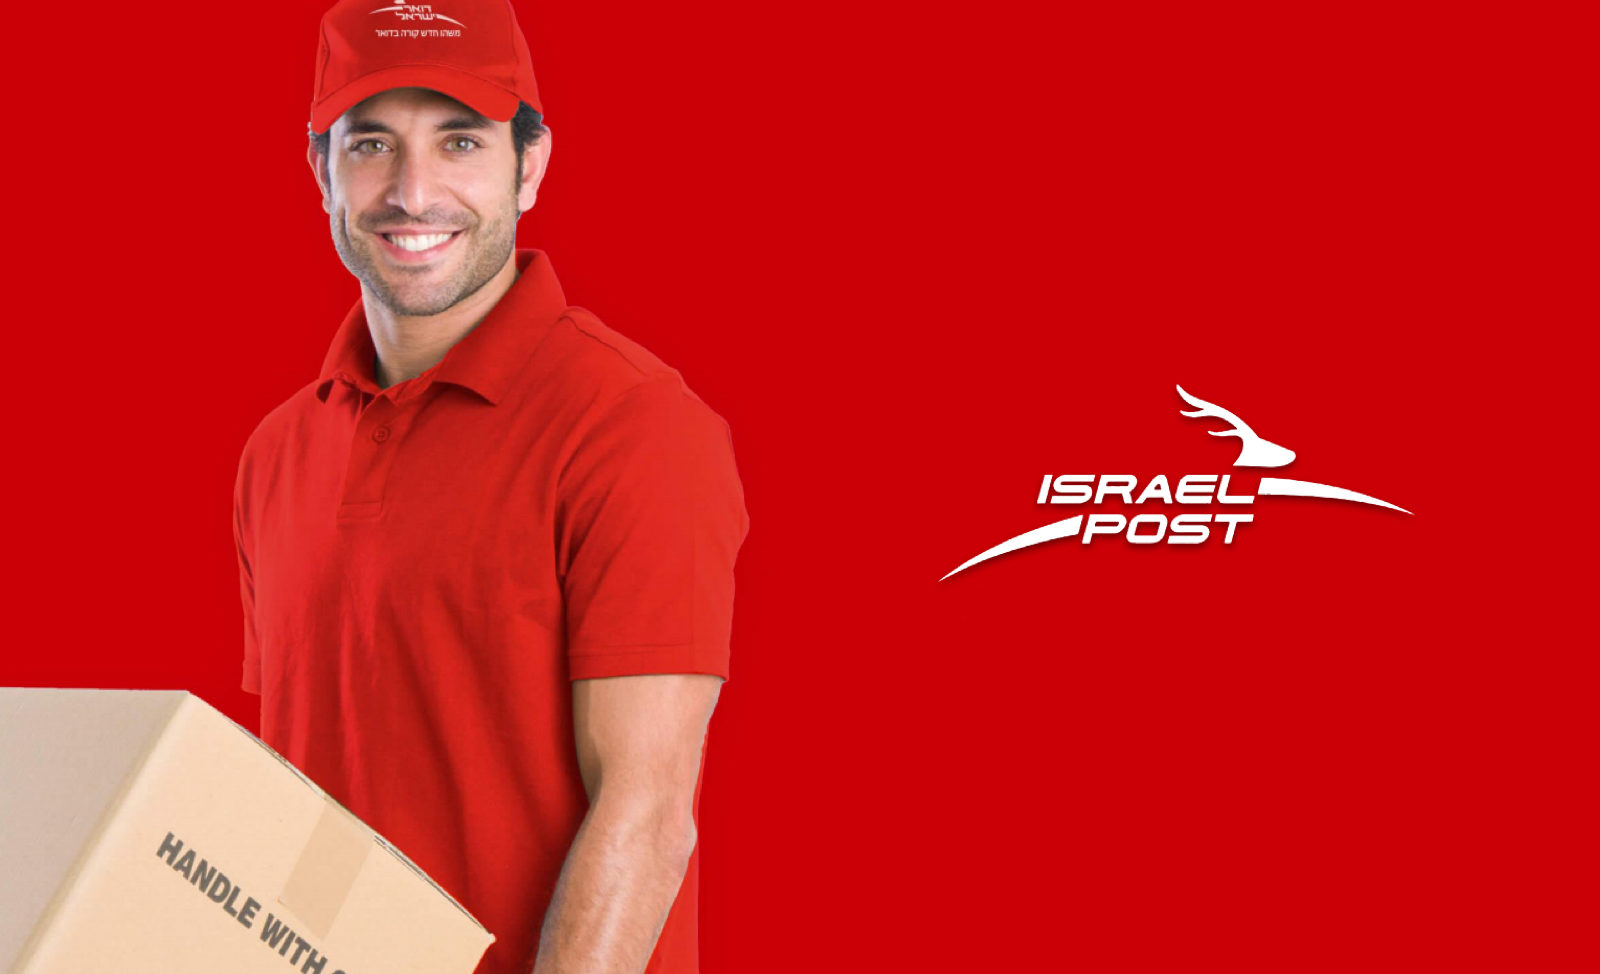 Learn how the Israeli post company multiplied their app installations by 700% and improved their whole offline & online user experience.